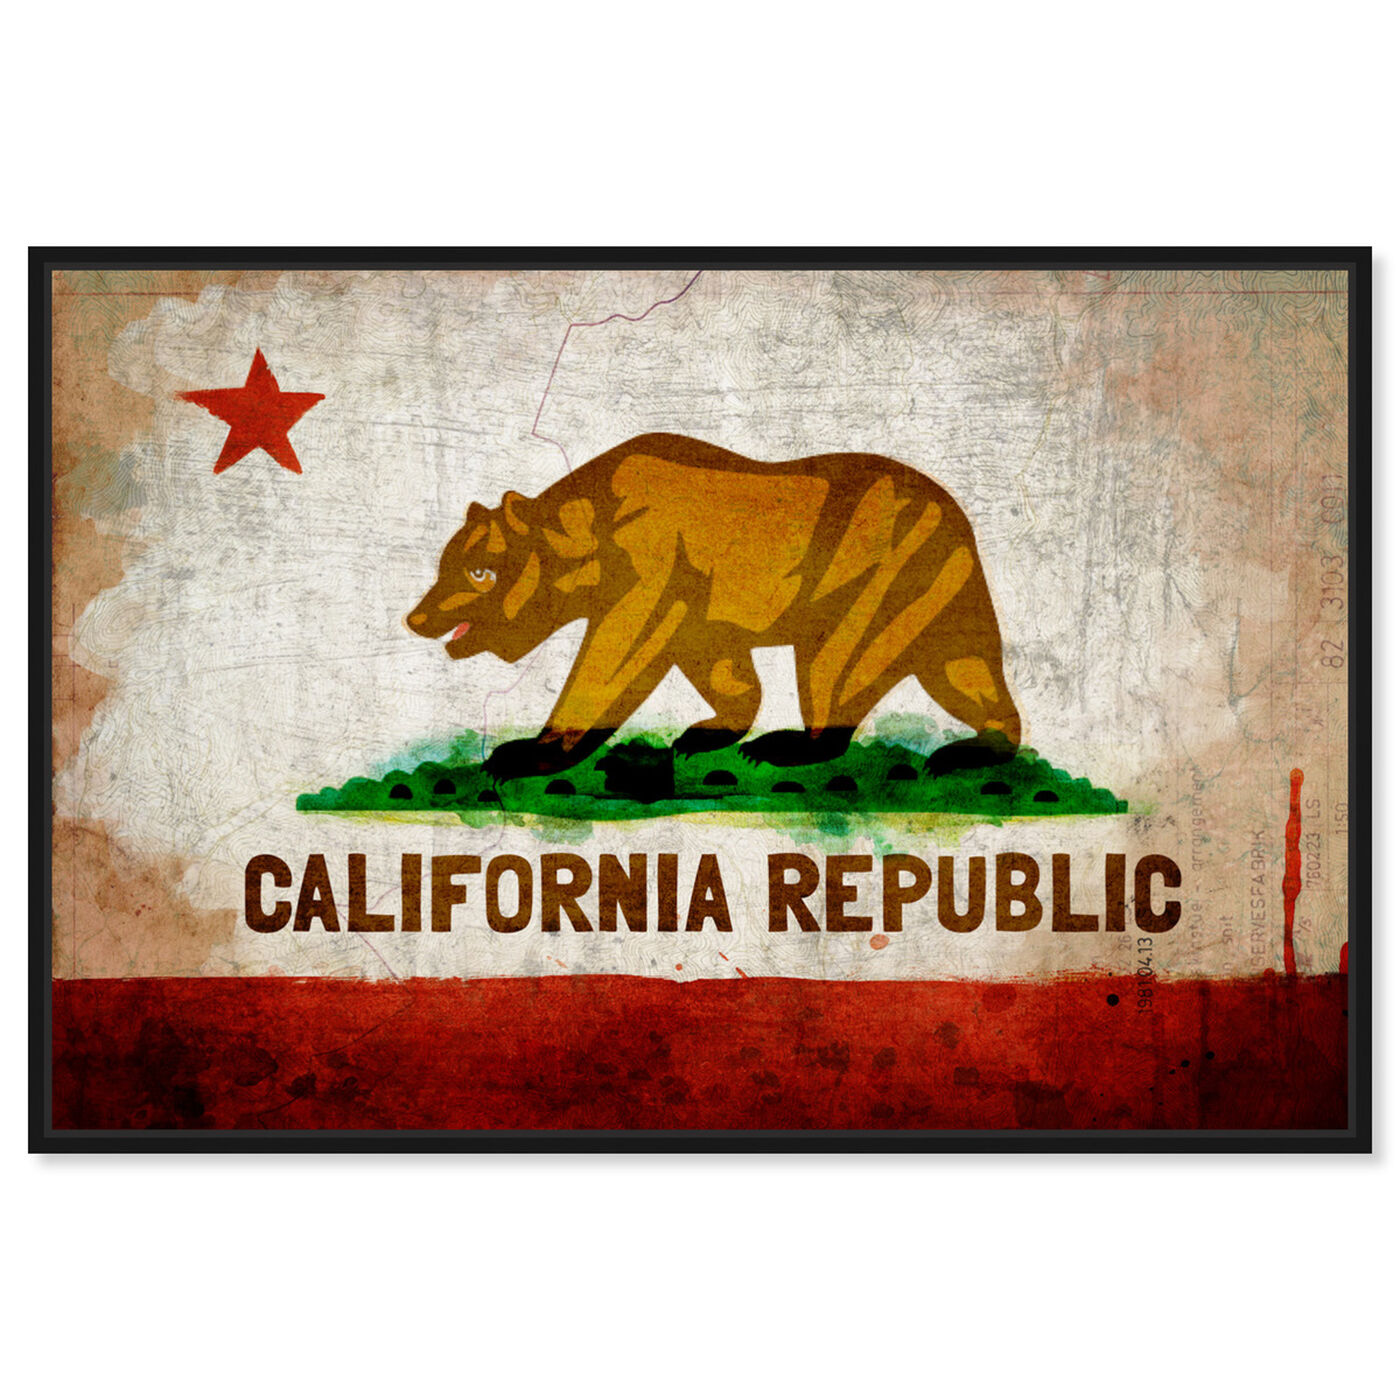 Front view of California Republic featuring maps and flags and us states flags art.